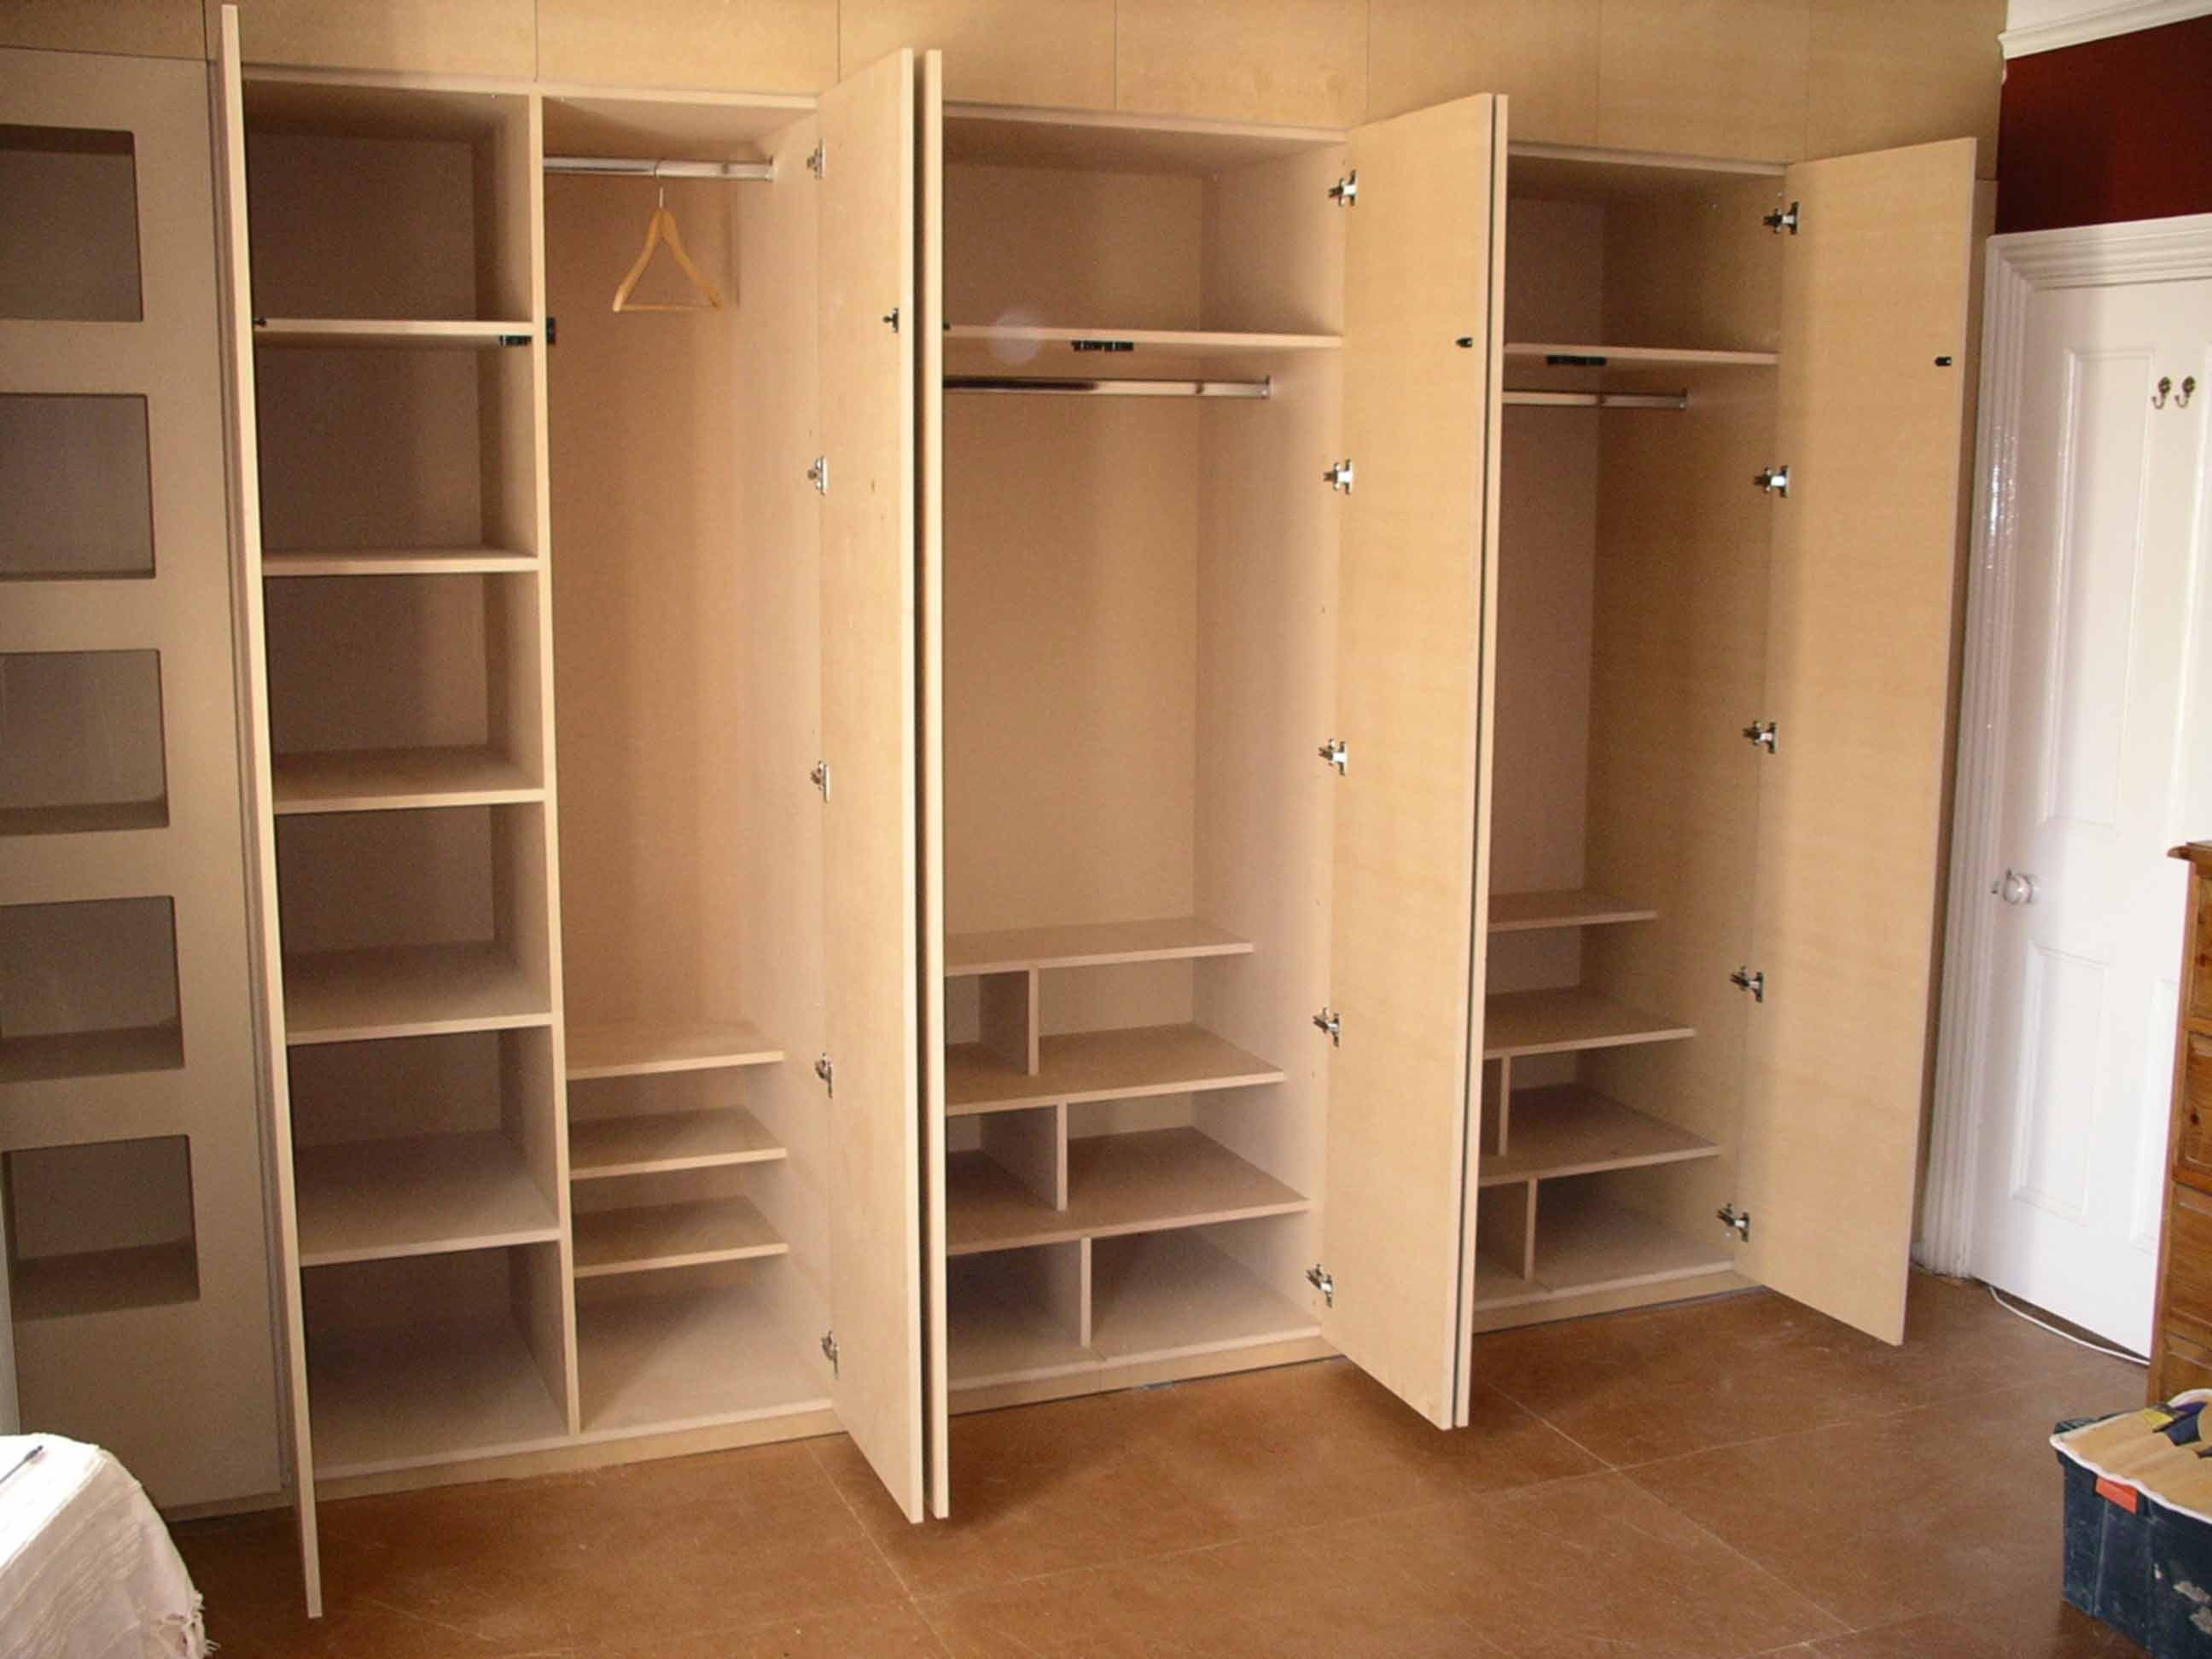 Bespoke Wardrobe Doors Manufacturers Ideas For Girls Room And With Wall Wardrobes (Image 2 of 15)